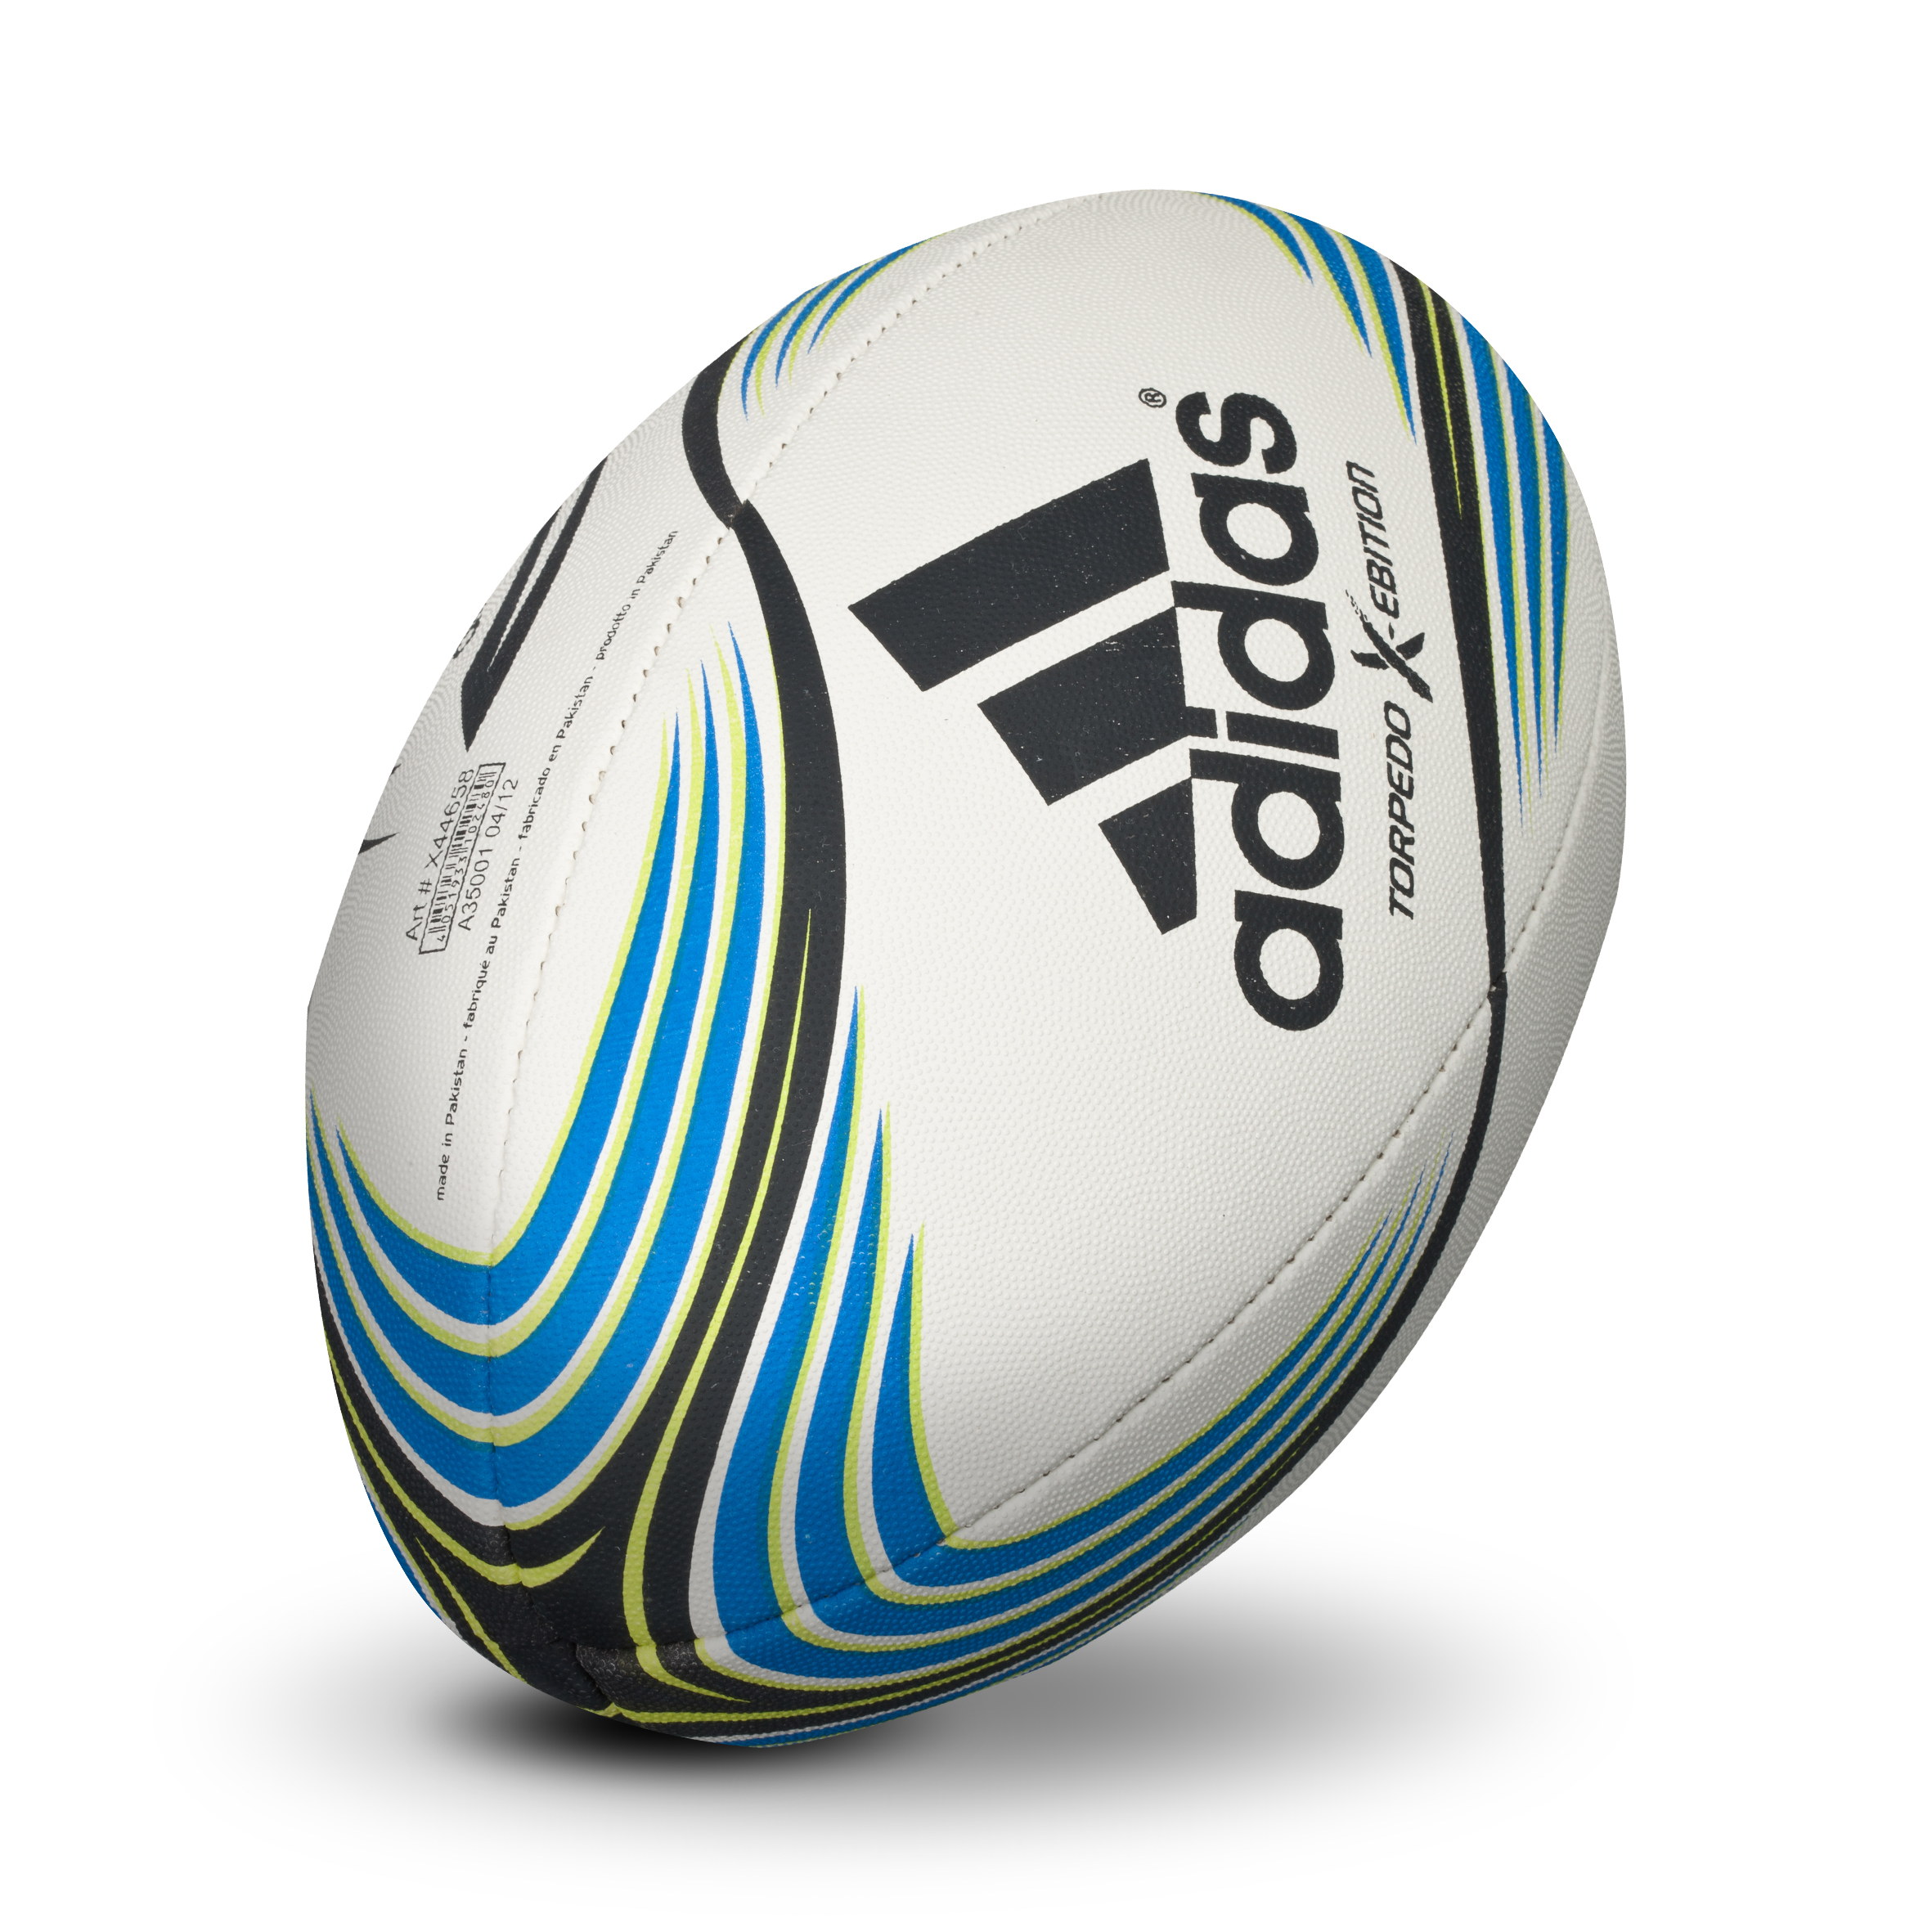 adidas Torpedo X-Ebition Rugby Ball - White